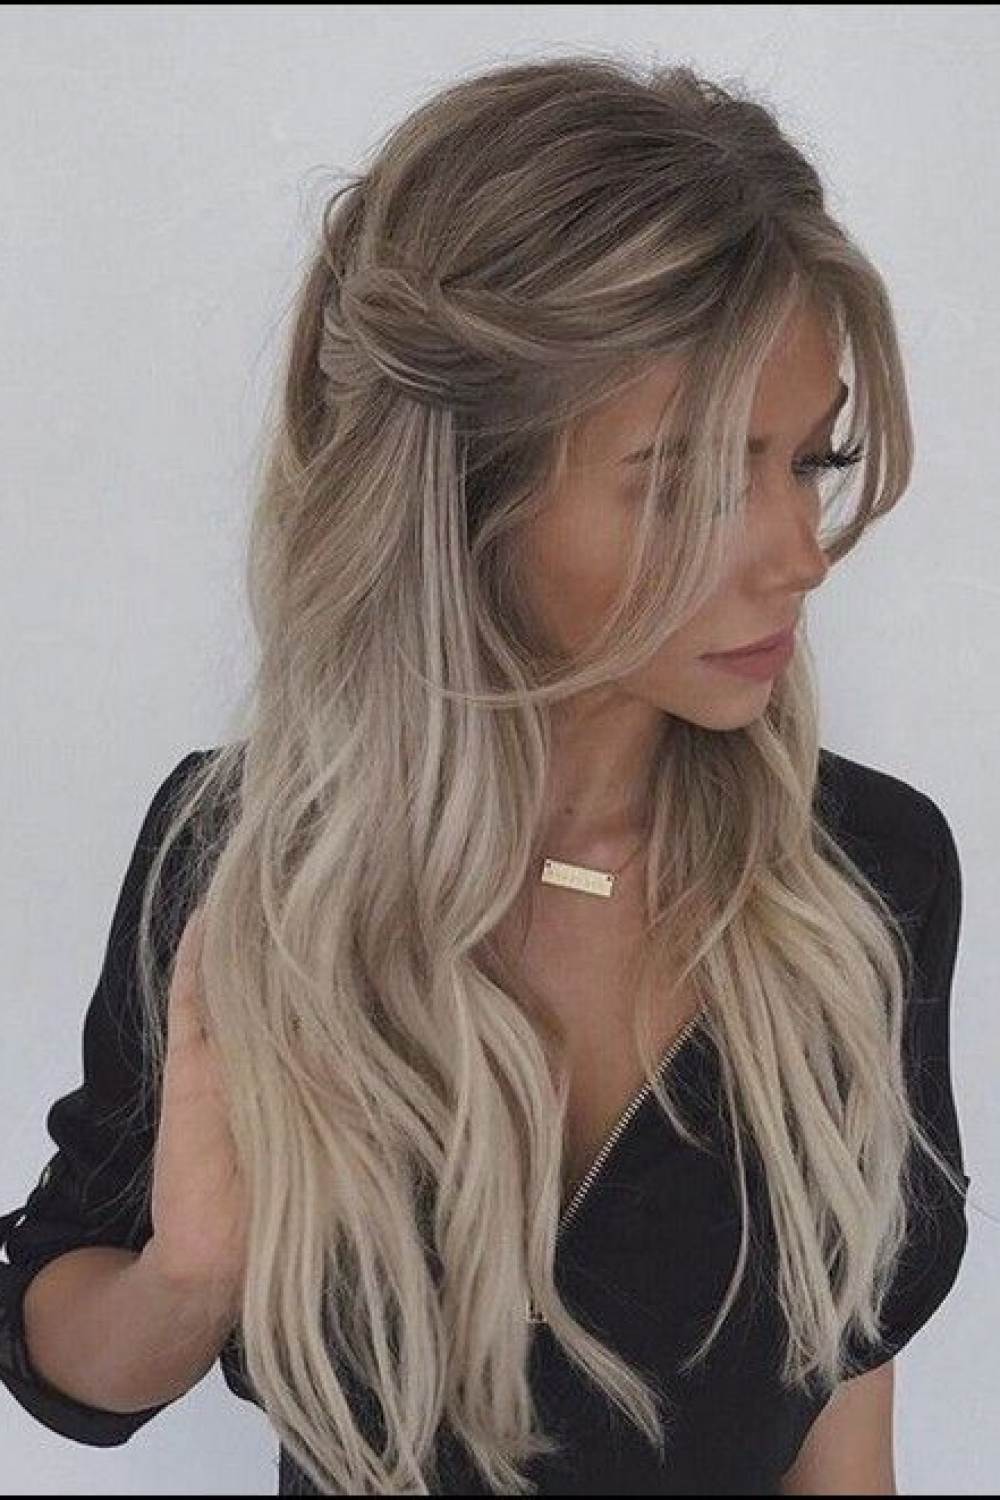 28 Easy Tips For Prom Hair Ideas For You Hair Styles Long Hair Styles Braids For Long Hair